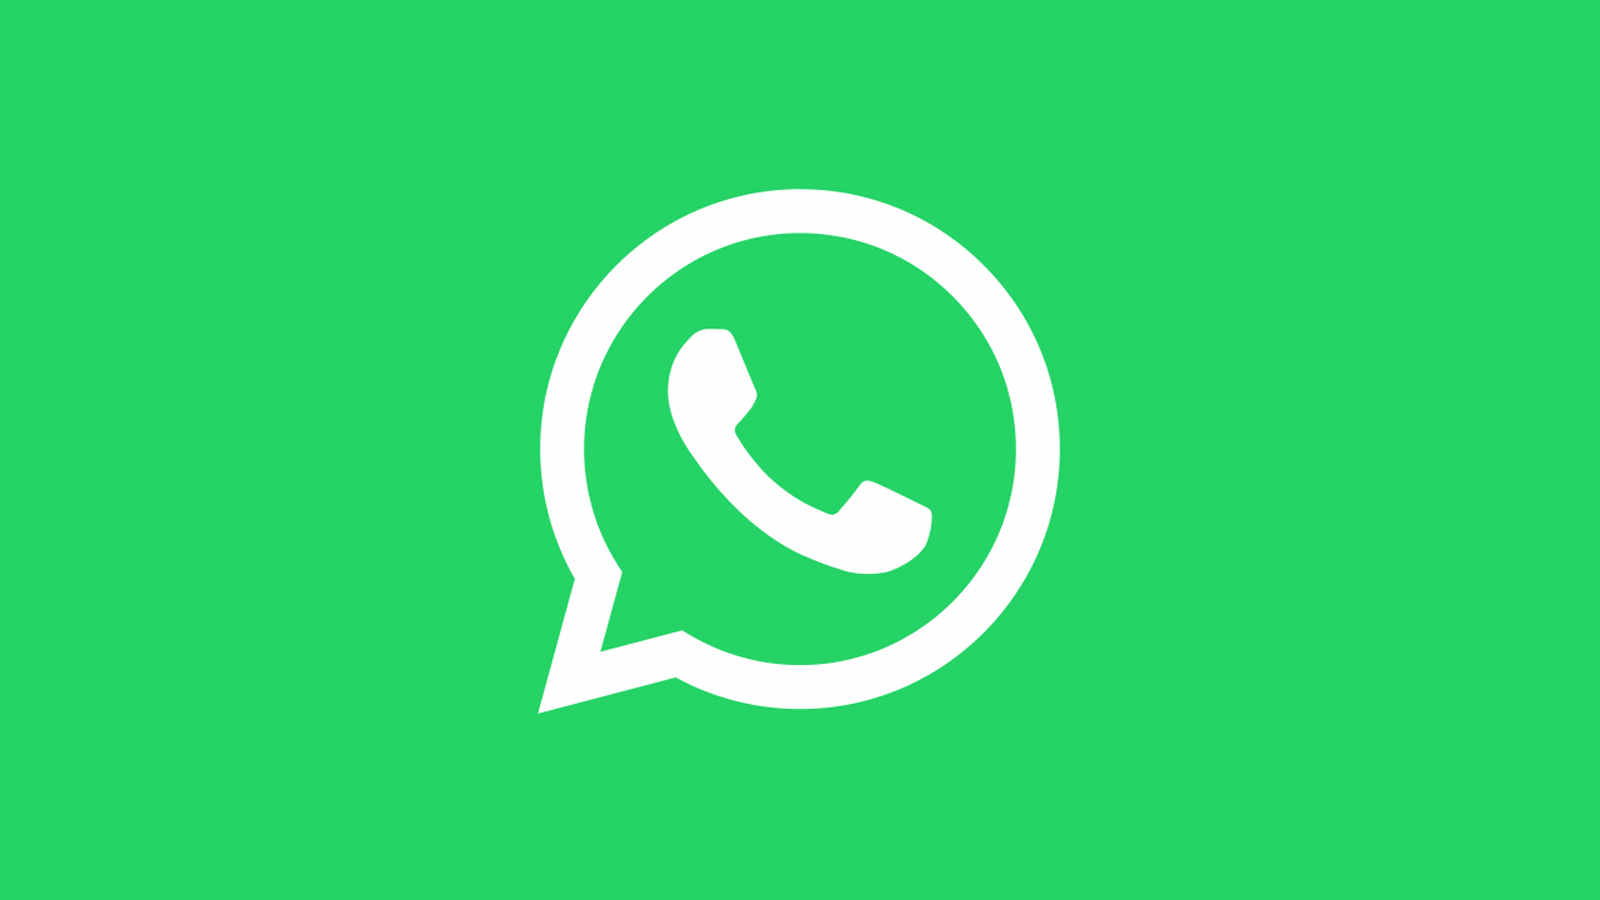 WhatsApp cambio de color